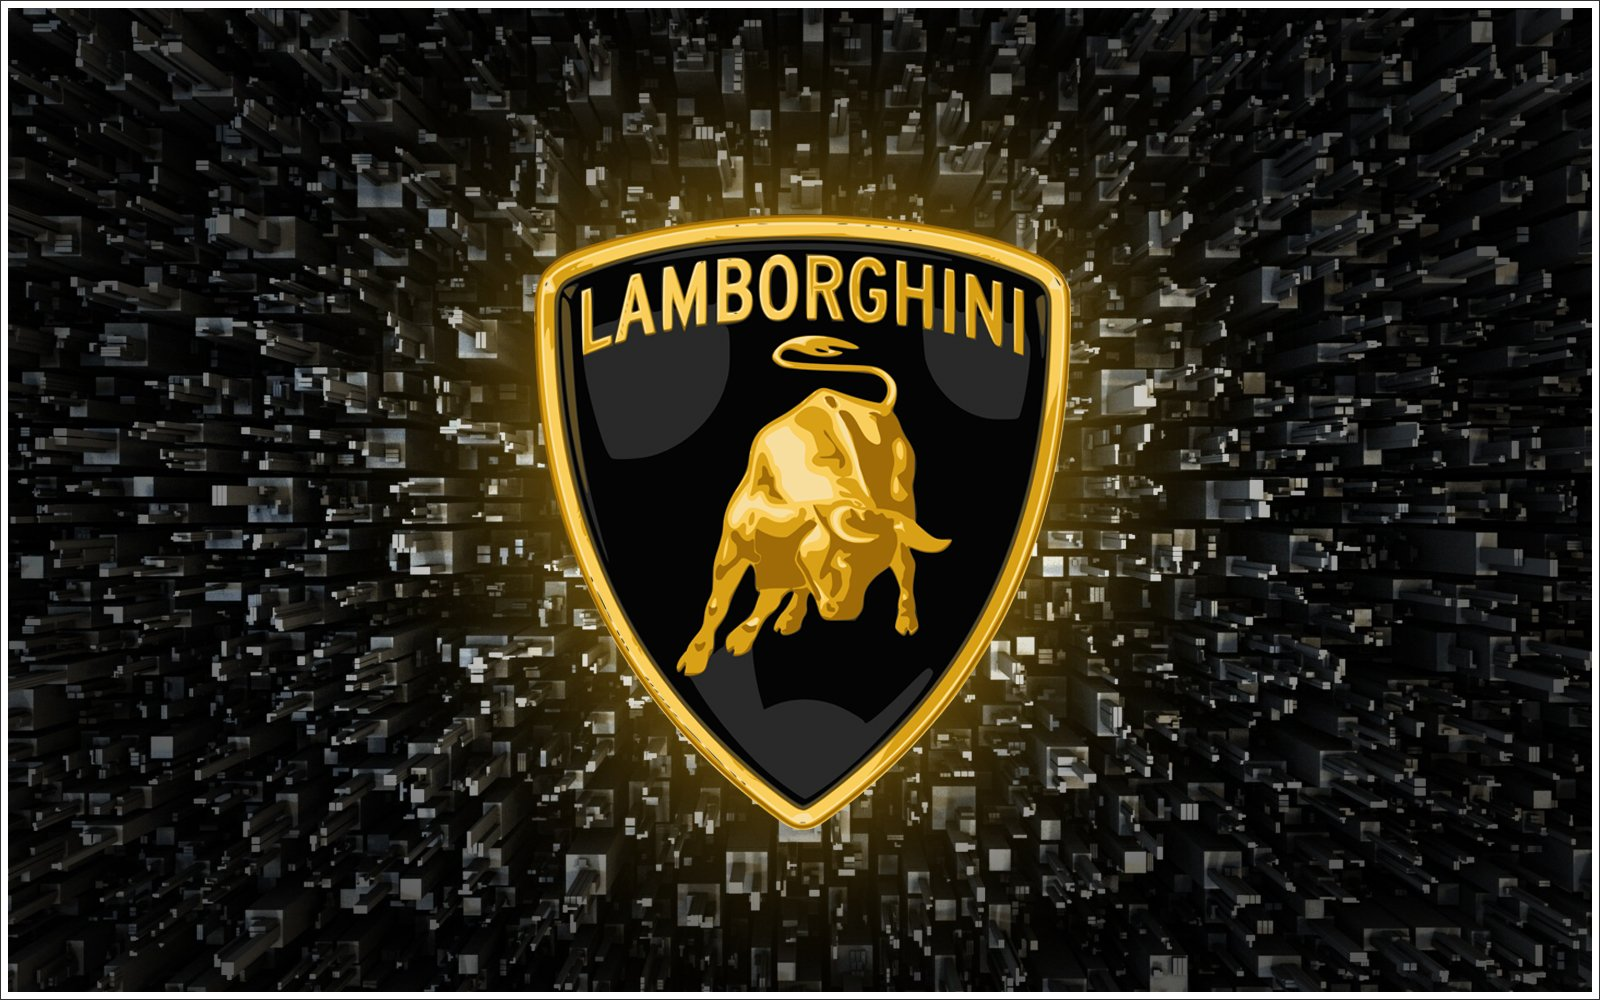 lamborghini symbol description - Real Lamborghini Bull